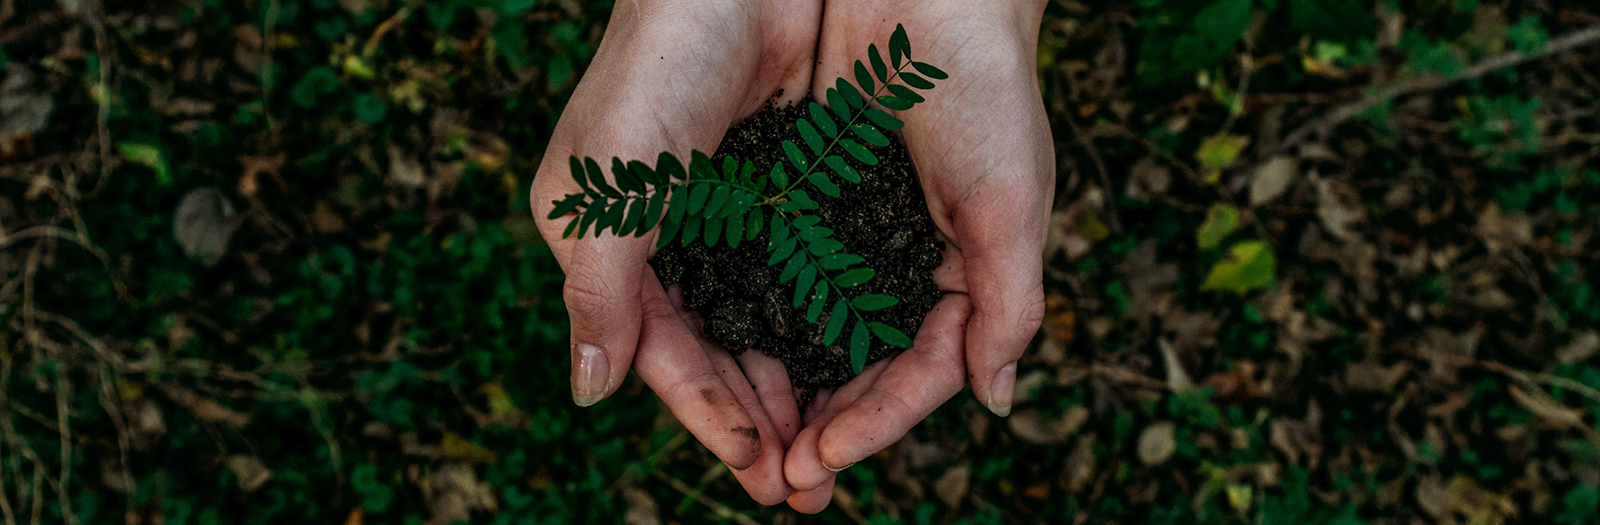 person holding soil and a plant